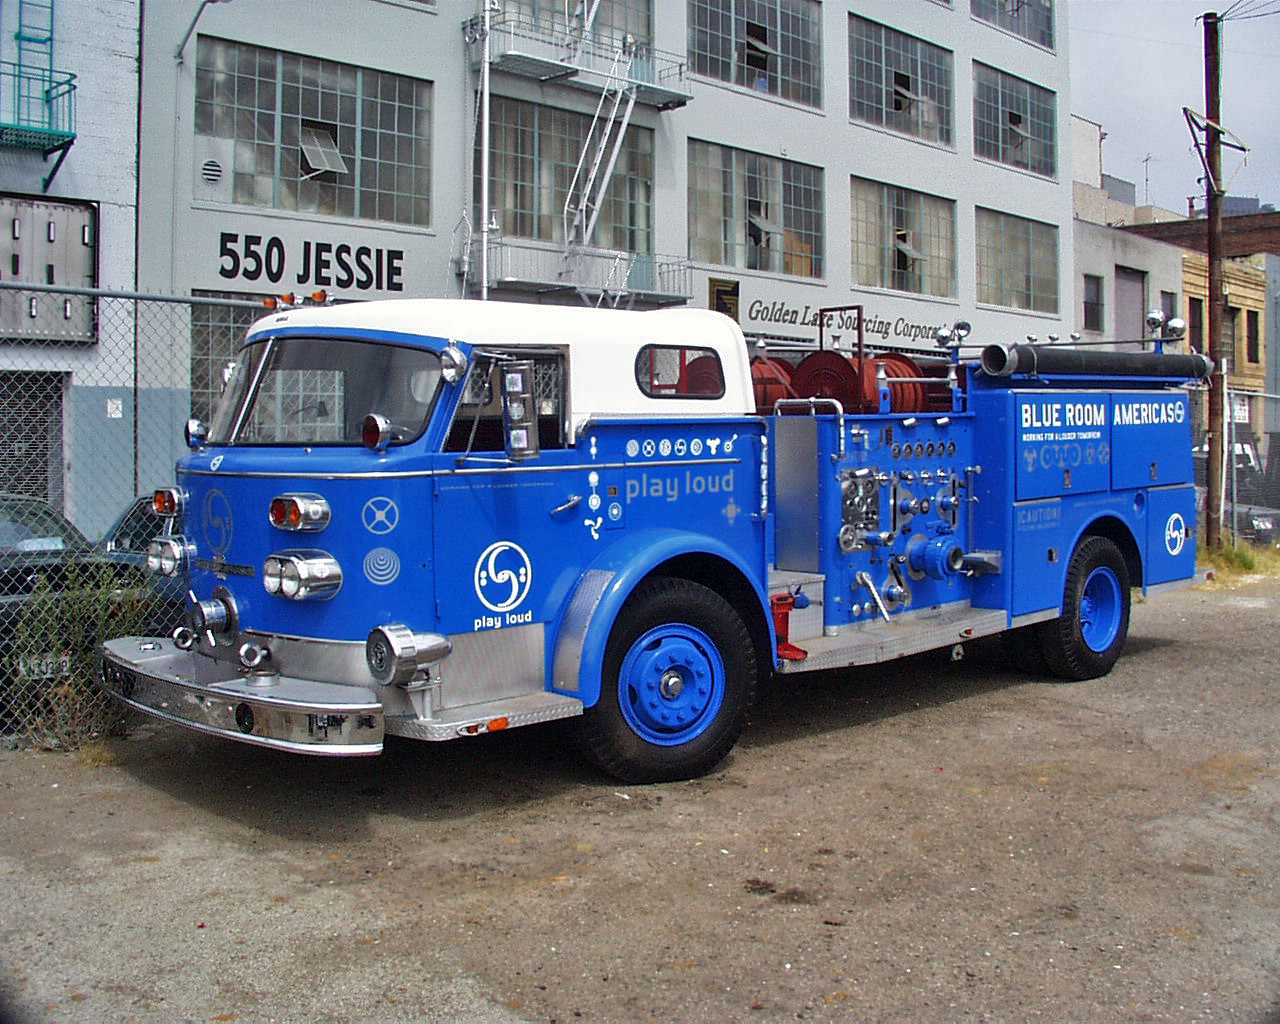 The Blue Room Fire truck